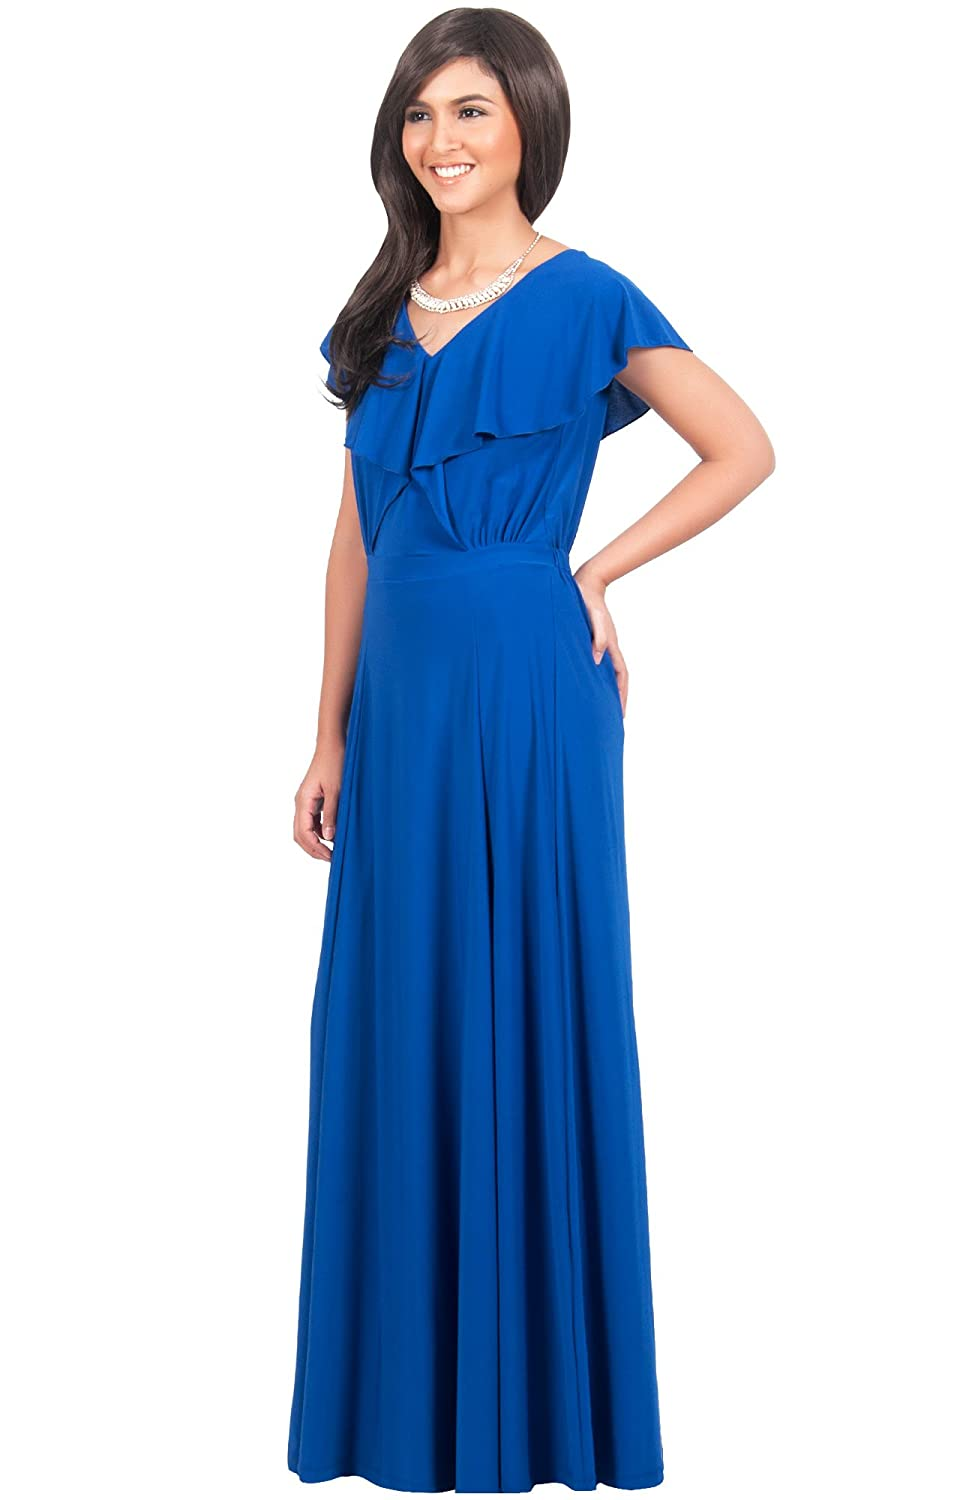 Koh koh womens long long v neck short sleeve cocktail bridesmaid koh koh womens long long v neck short sleeve cocktail bridesmaid gown maxi dress dresses maxi dress at amazon womens clothing store ombrellifo Image collections